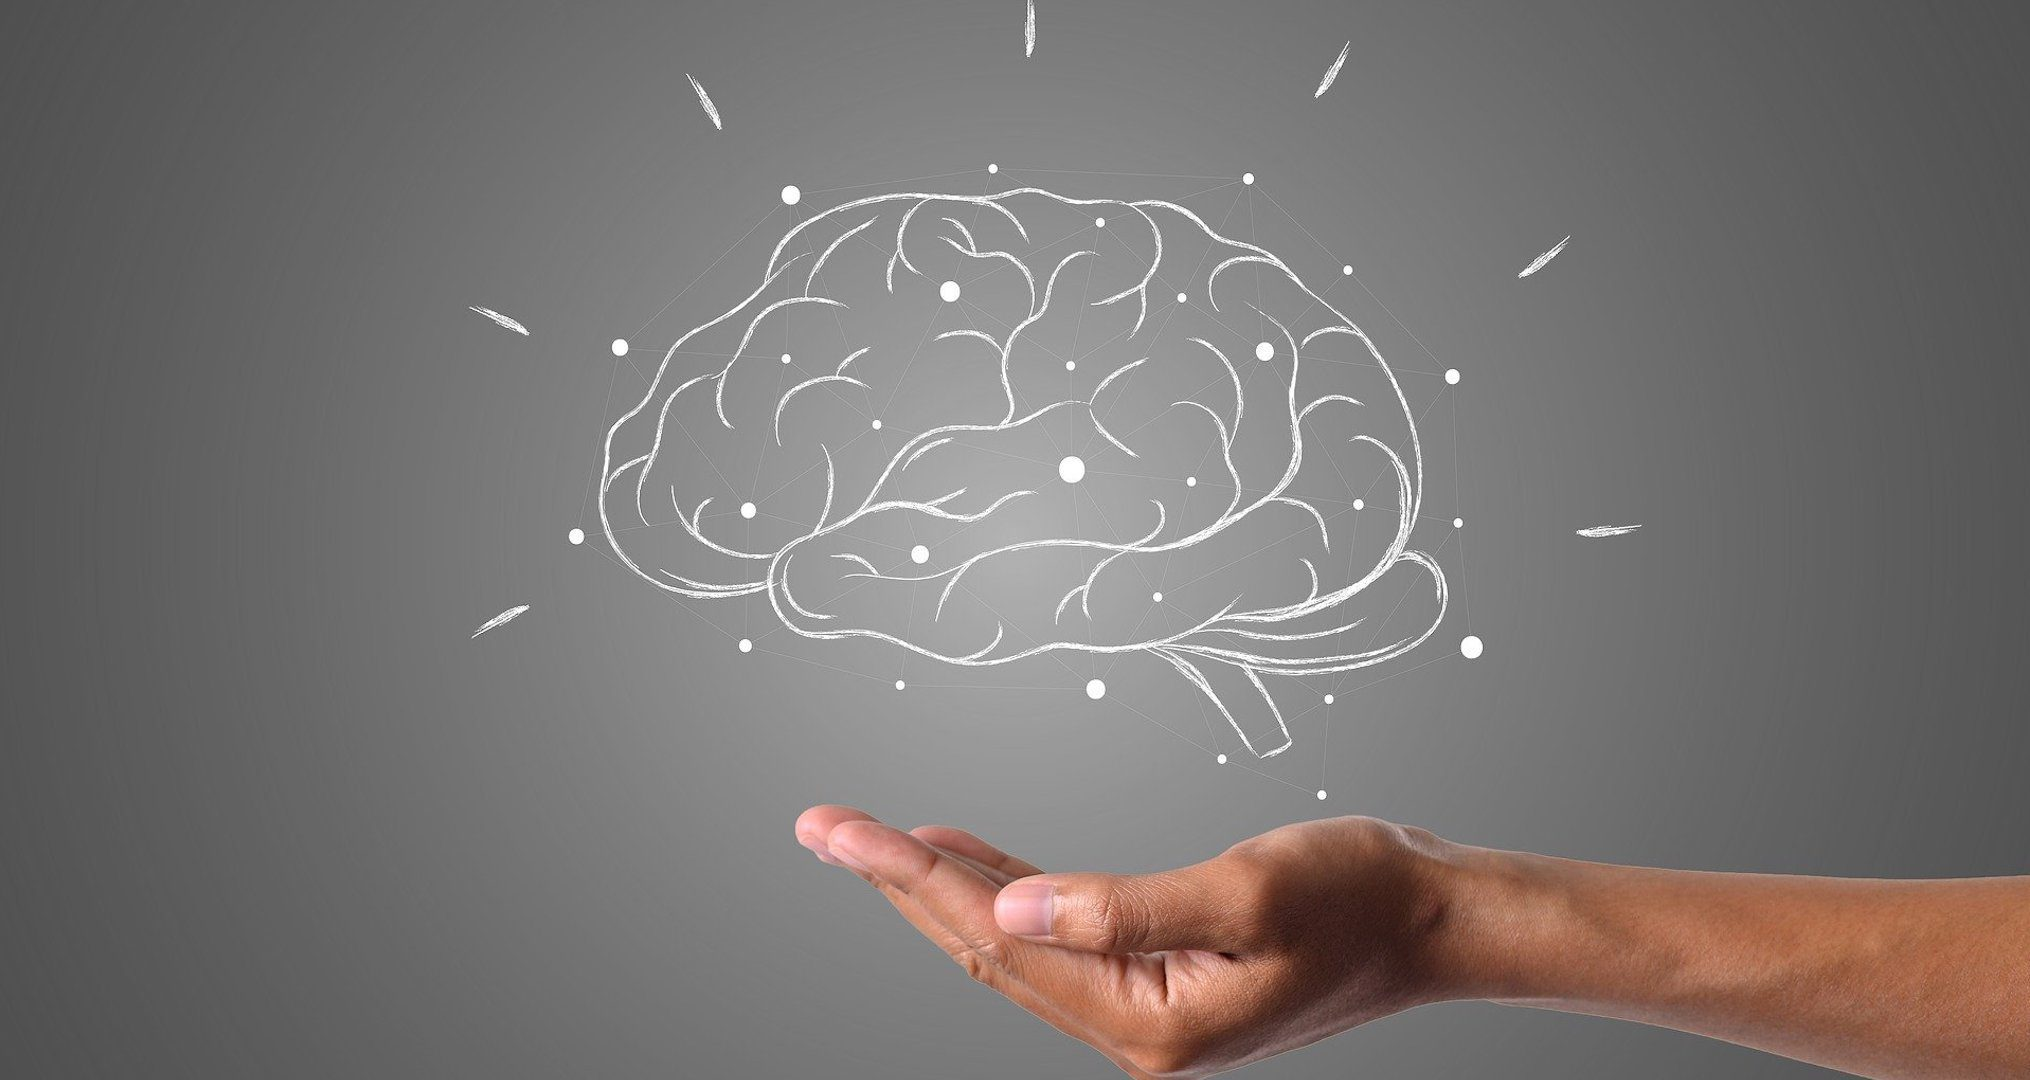 picture of a brain drawn in white chalk with a hand underneath supporting it